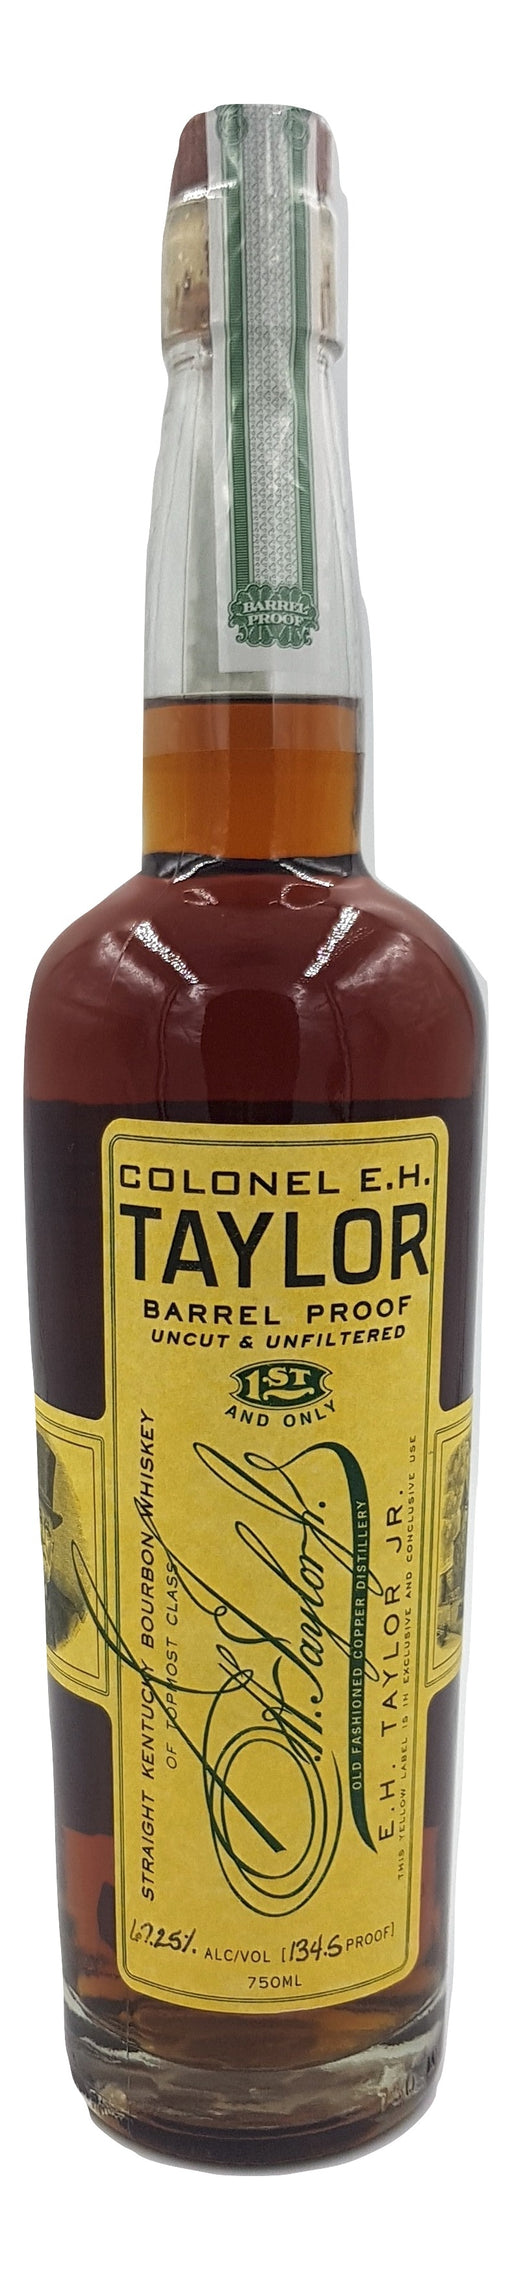 Colonel EH Taylor Barrel Proof 2012 - NativeSpiritsOnline